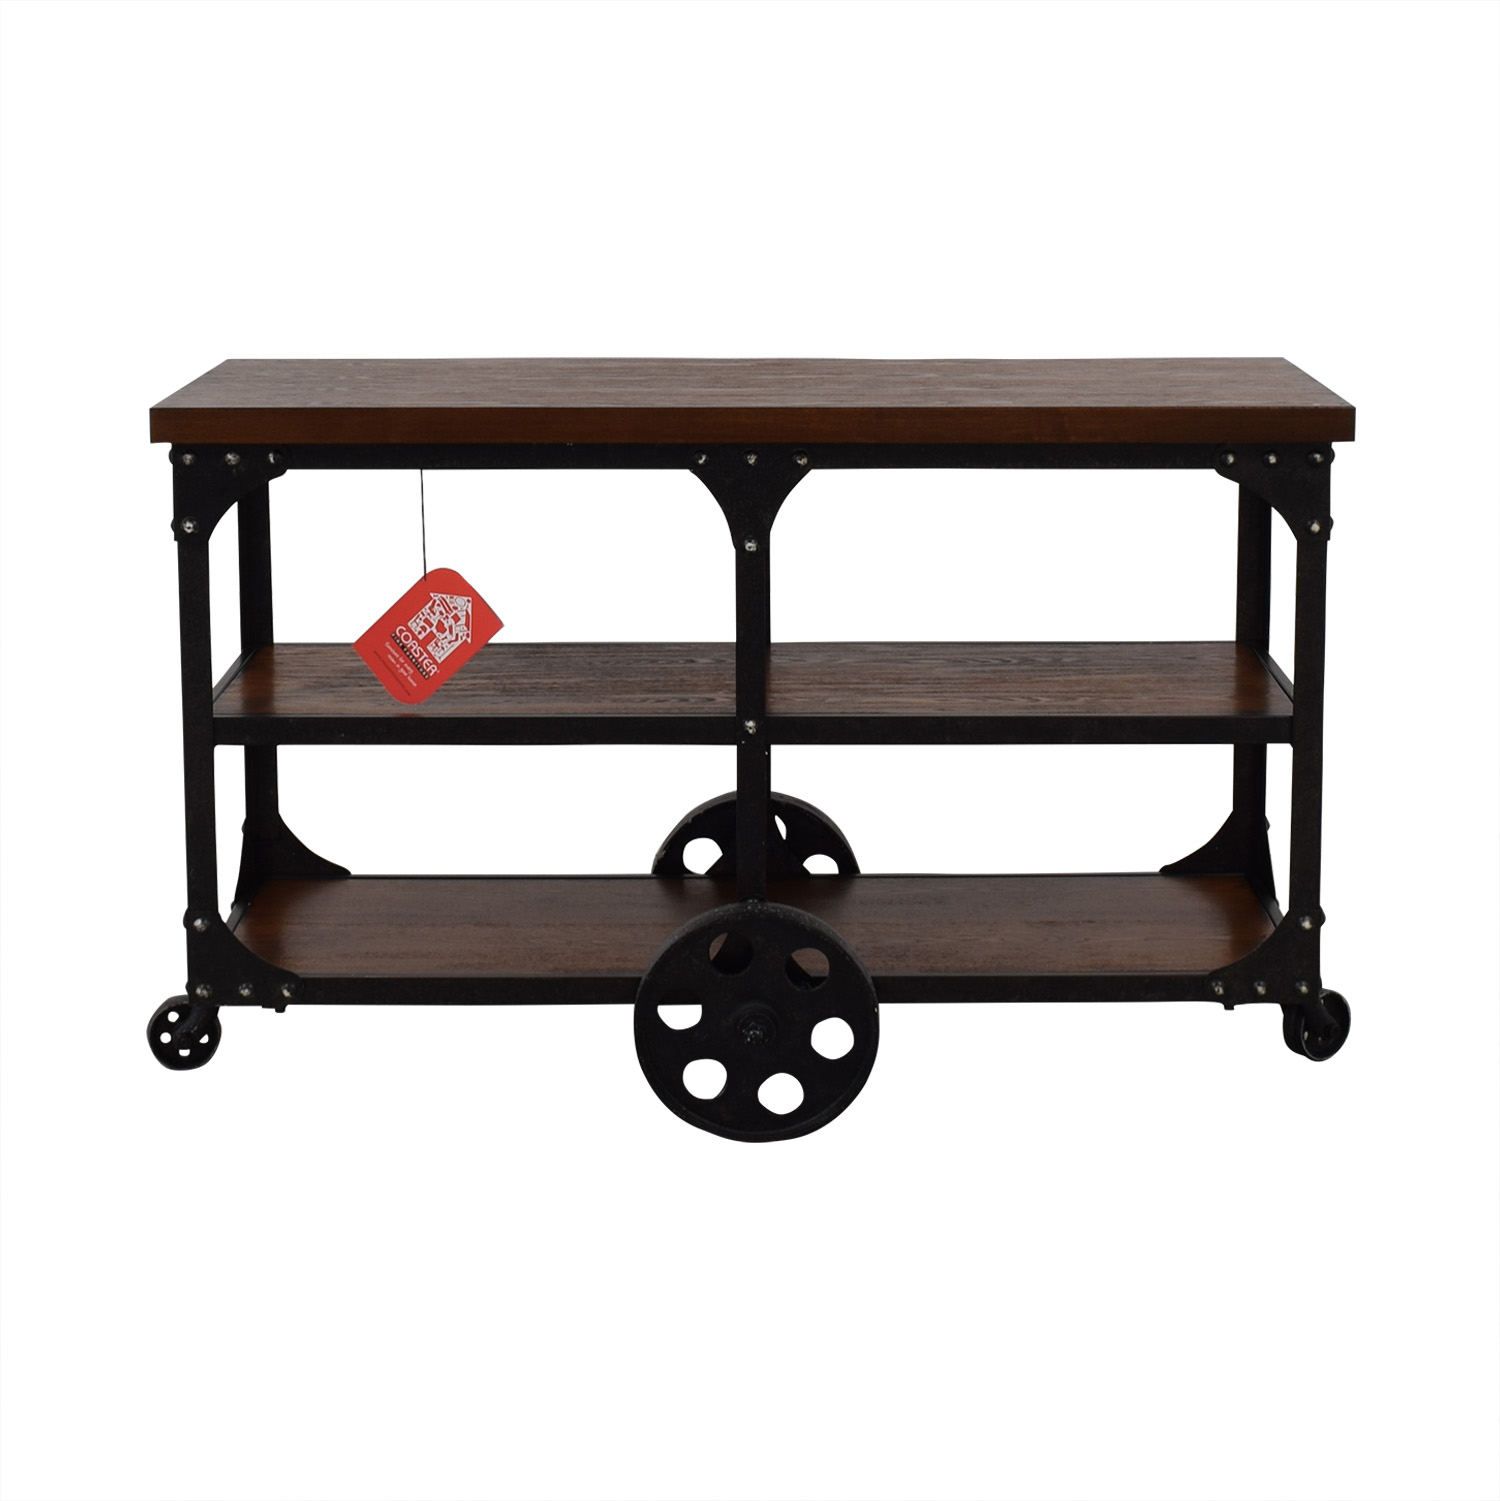 buy Coaster Fine Furniture Coaster Fine Furniture Rustic Industrial Roller Cart Sofa Table online